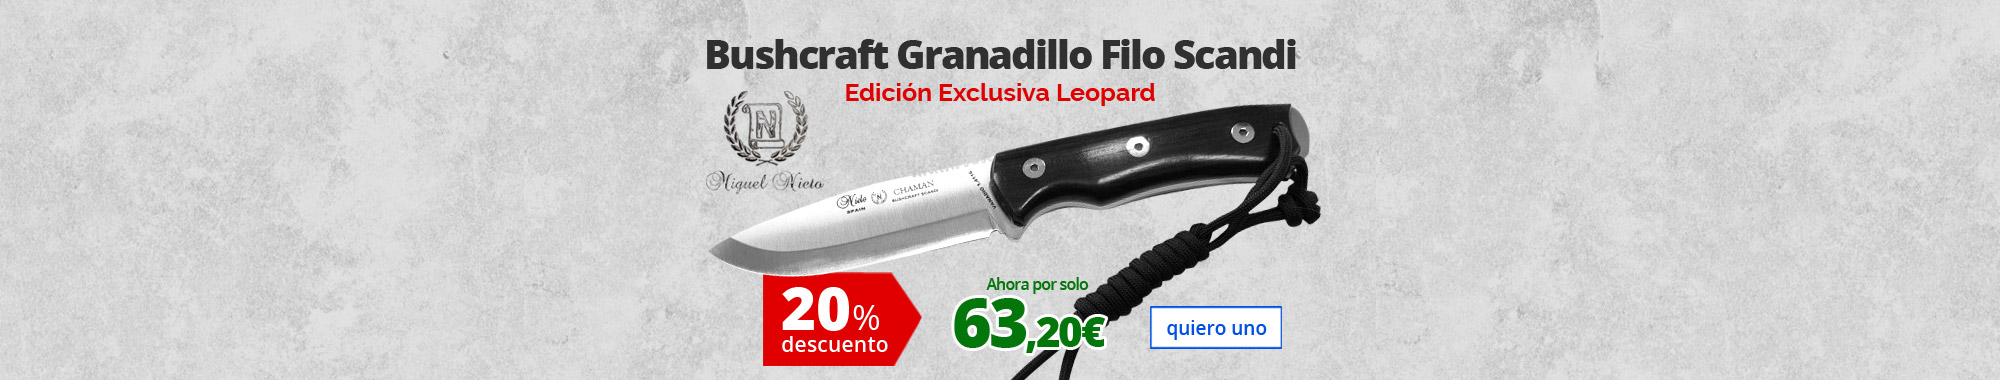 20% dto Bushcraft Granadillo